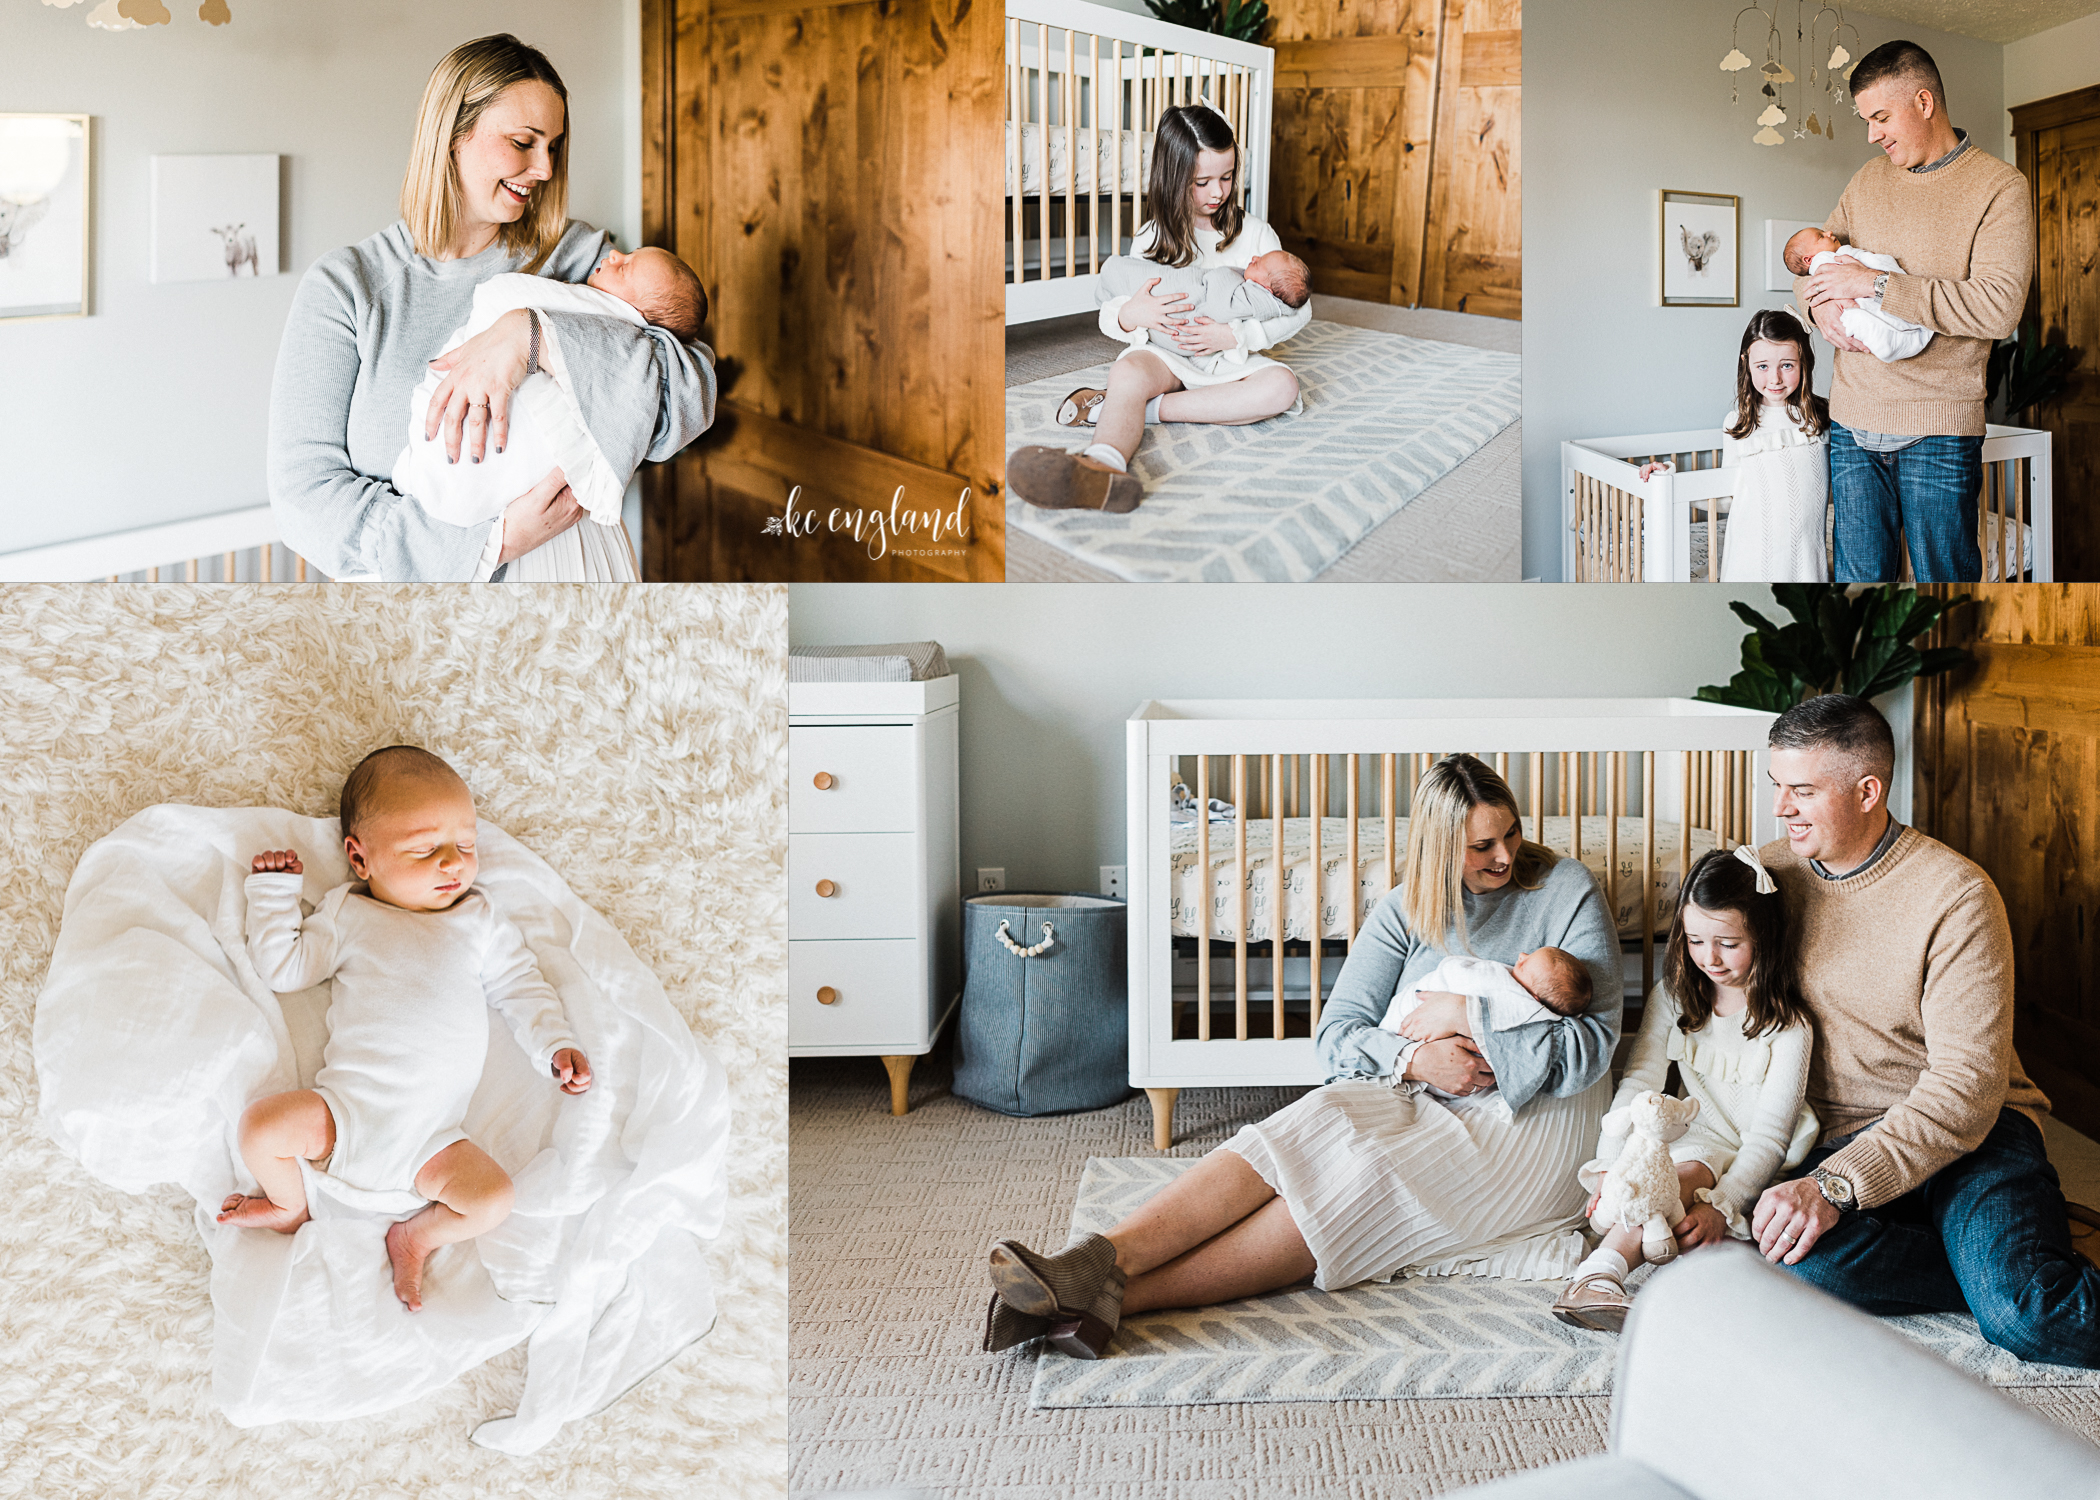 home_newborn_session_spokane_wa.jpg